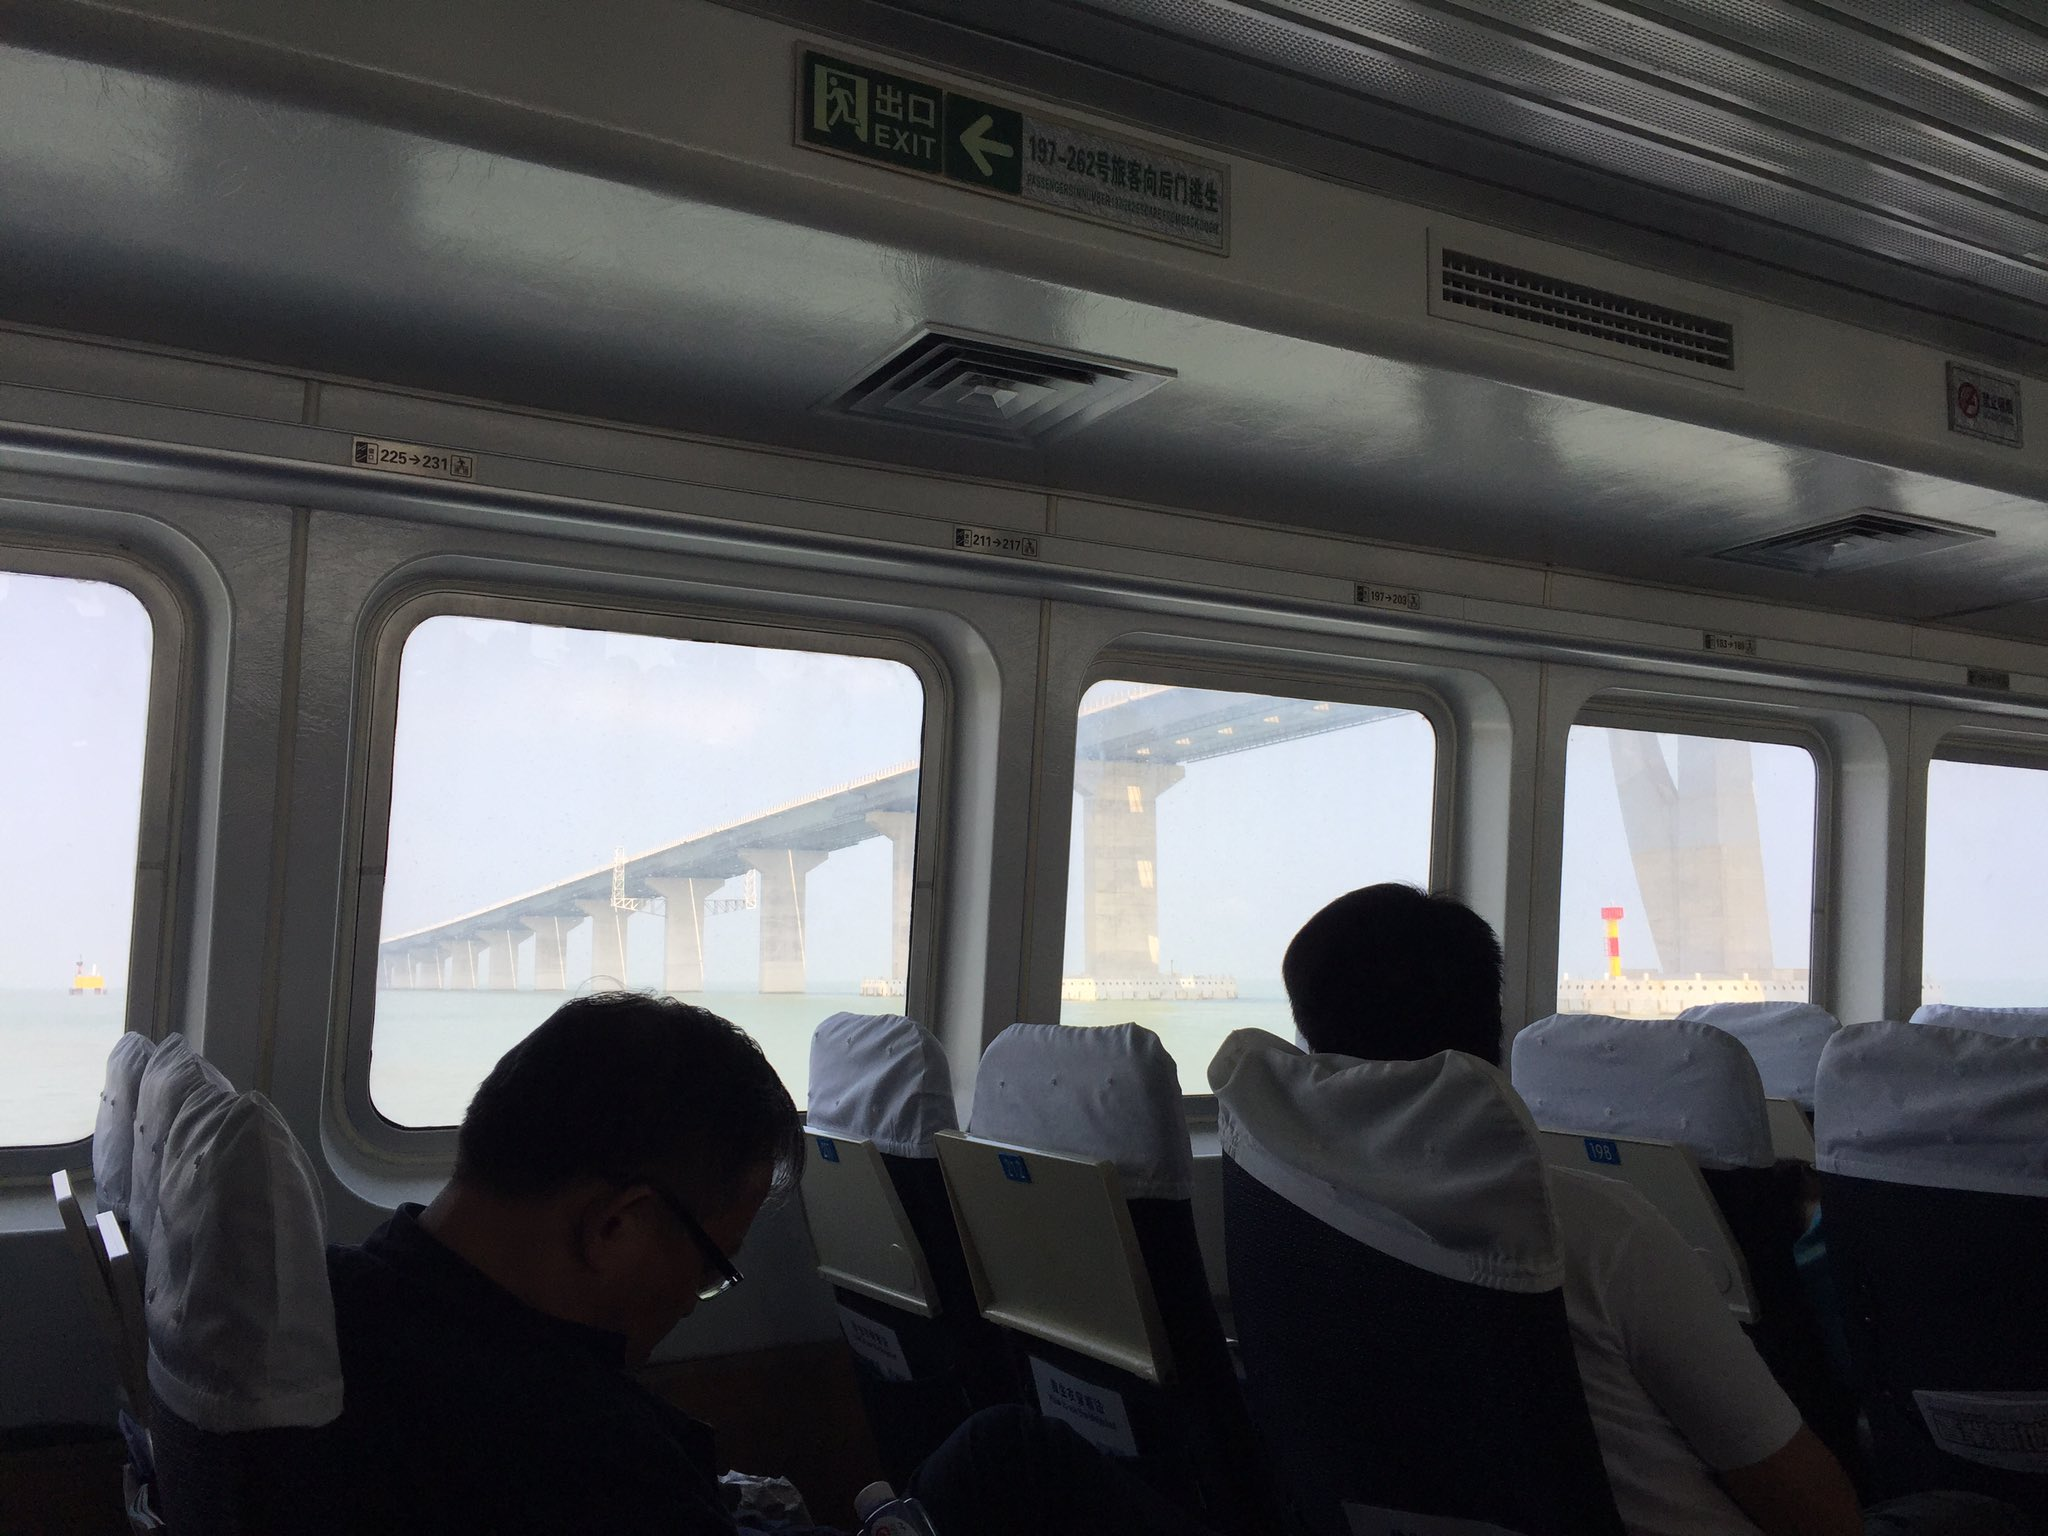 They're building a whopping great bridge between Zhuhai and Hong Kong. I kinda like the ferry though. https://t.co/3UsIFizva1